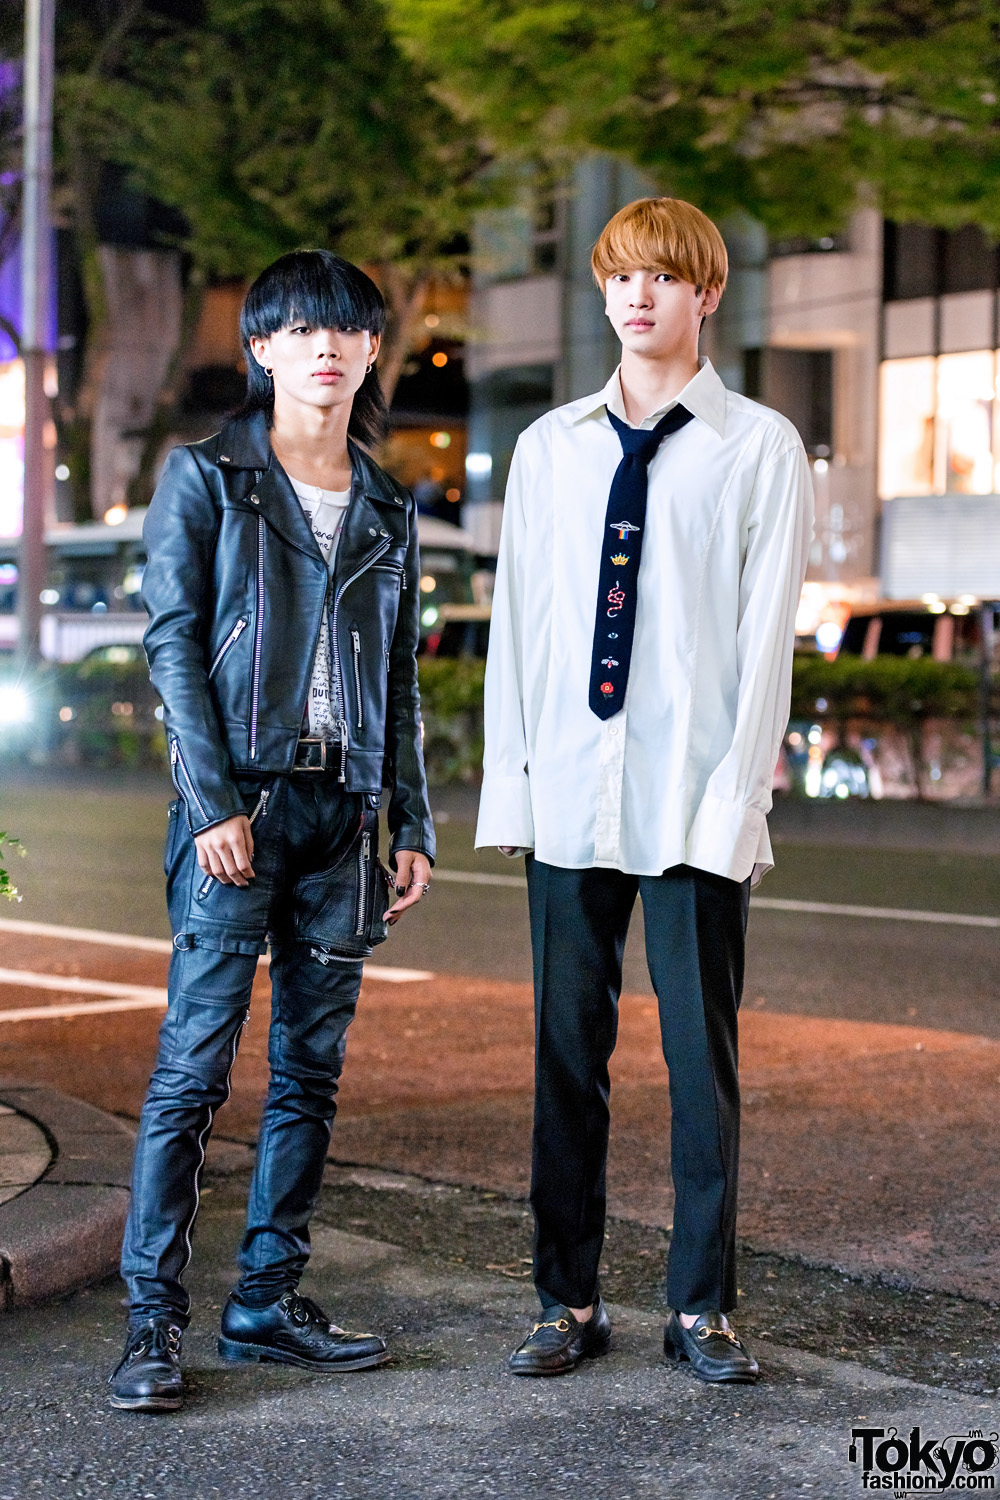 91603d8da9a He slipped into black leather loafers with gold buckles from Gucci to  complete his monochrome street style. The 19-year-old s fashion favorite is  Gucci